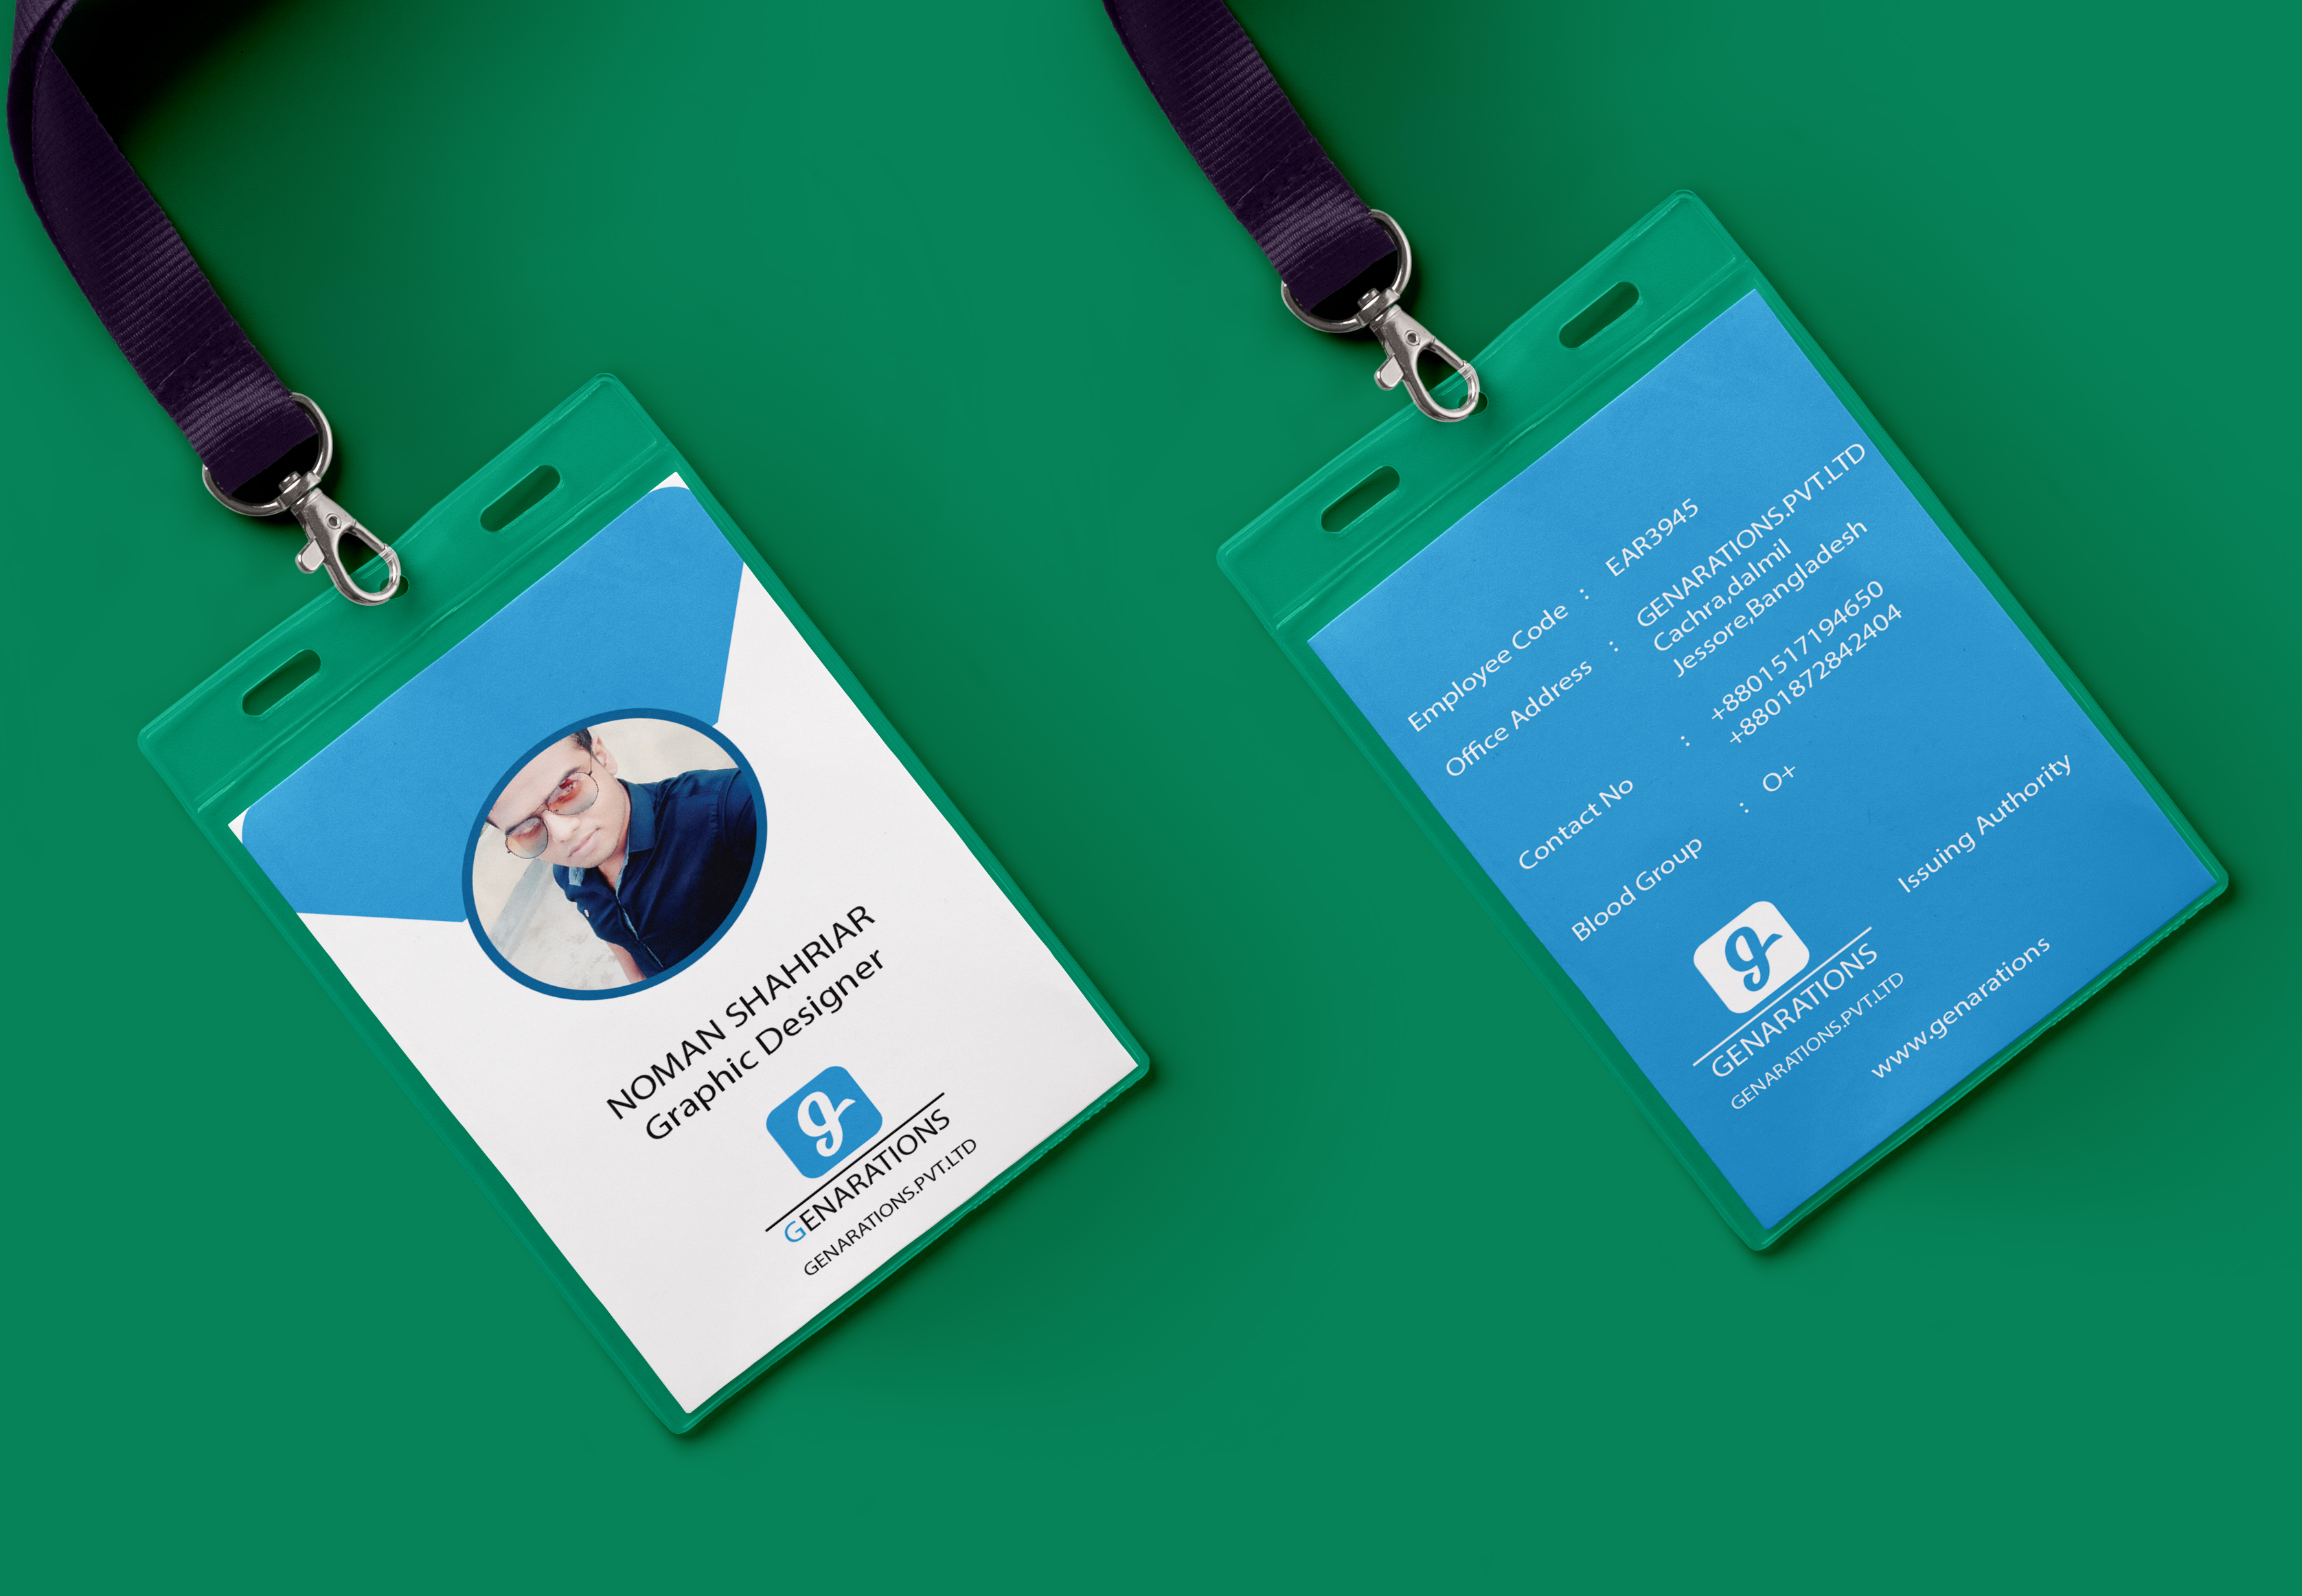 ID Card Design Within 24 Hours